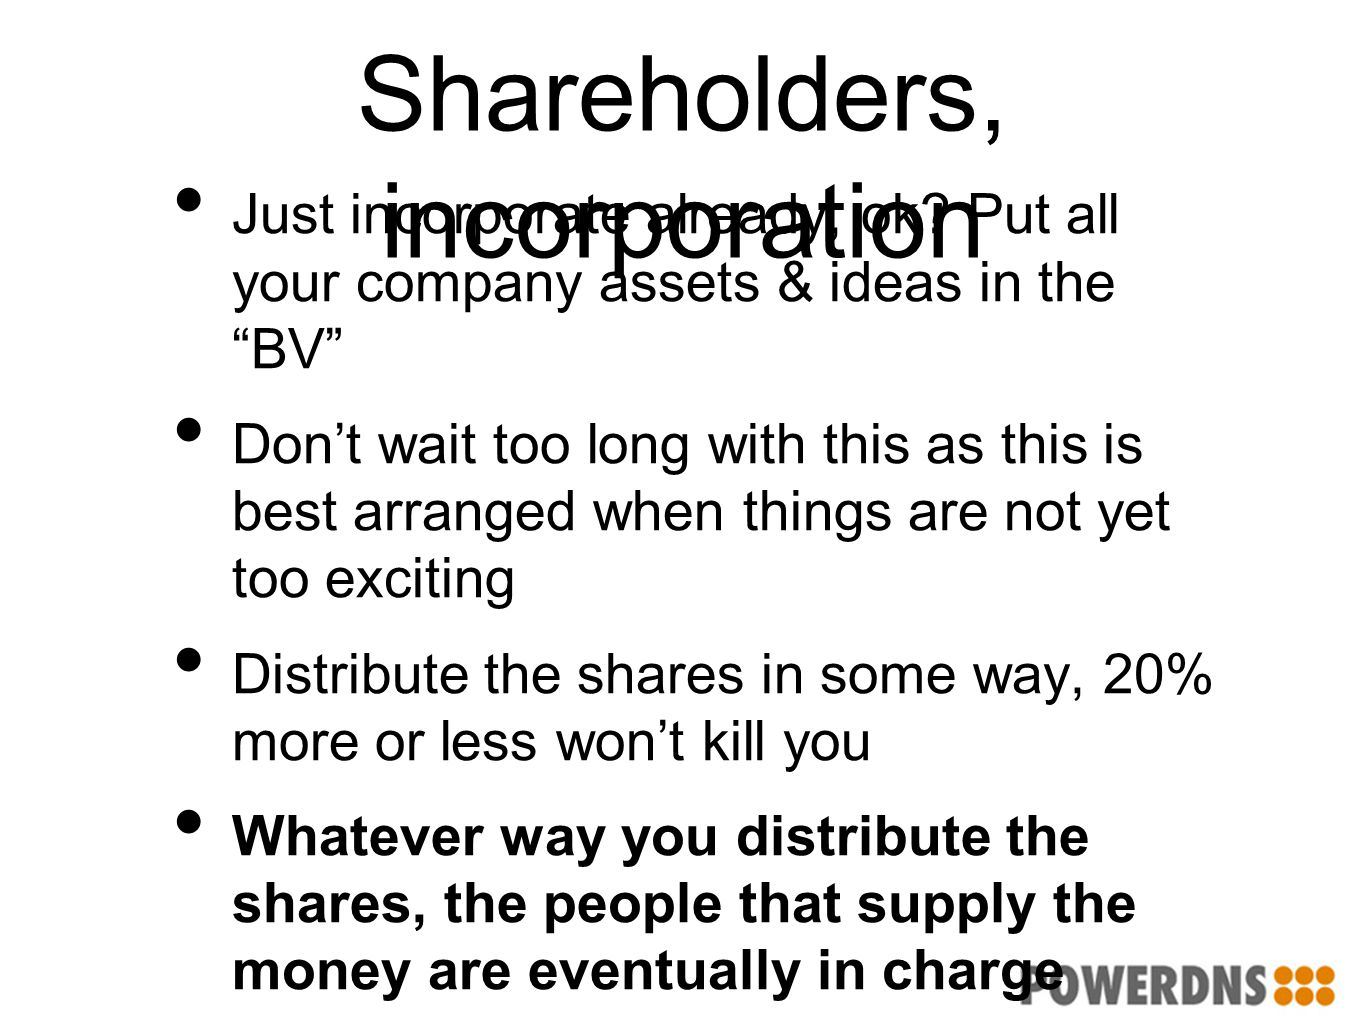 "Shareholders, incorporation Just incorporate already, ok? Put all your company assets & ideas in the ""BV"" Don't wait too long with this as this is bes"